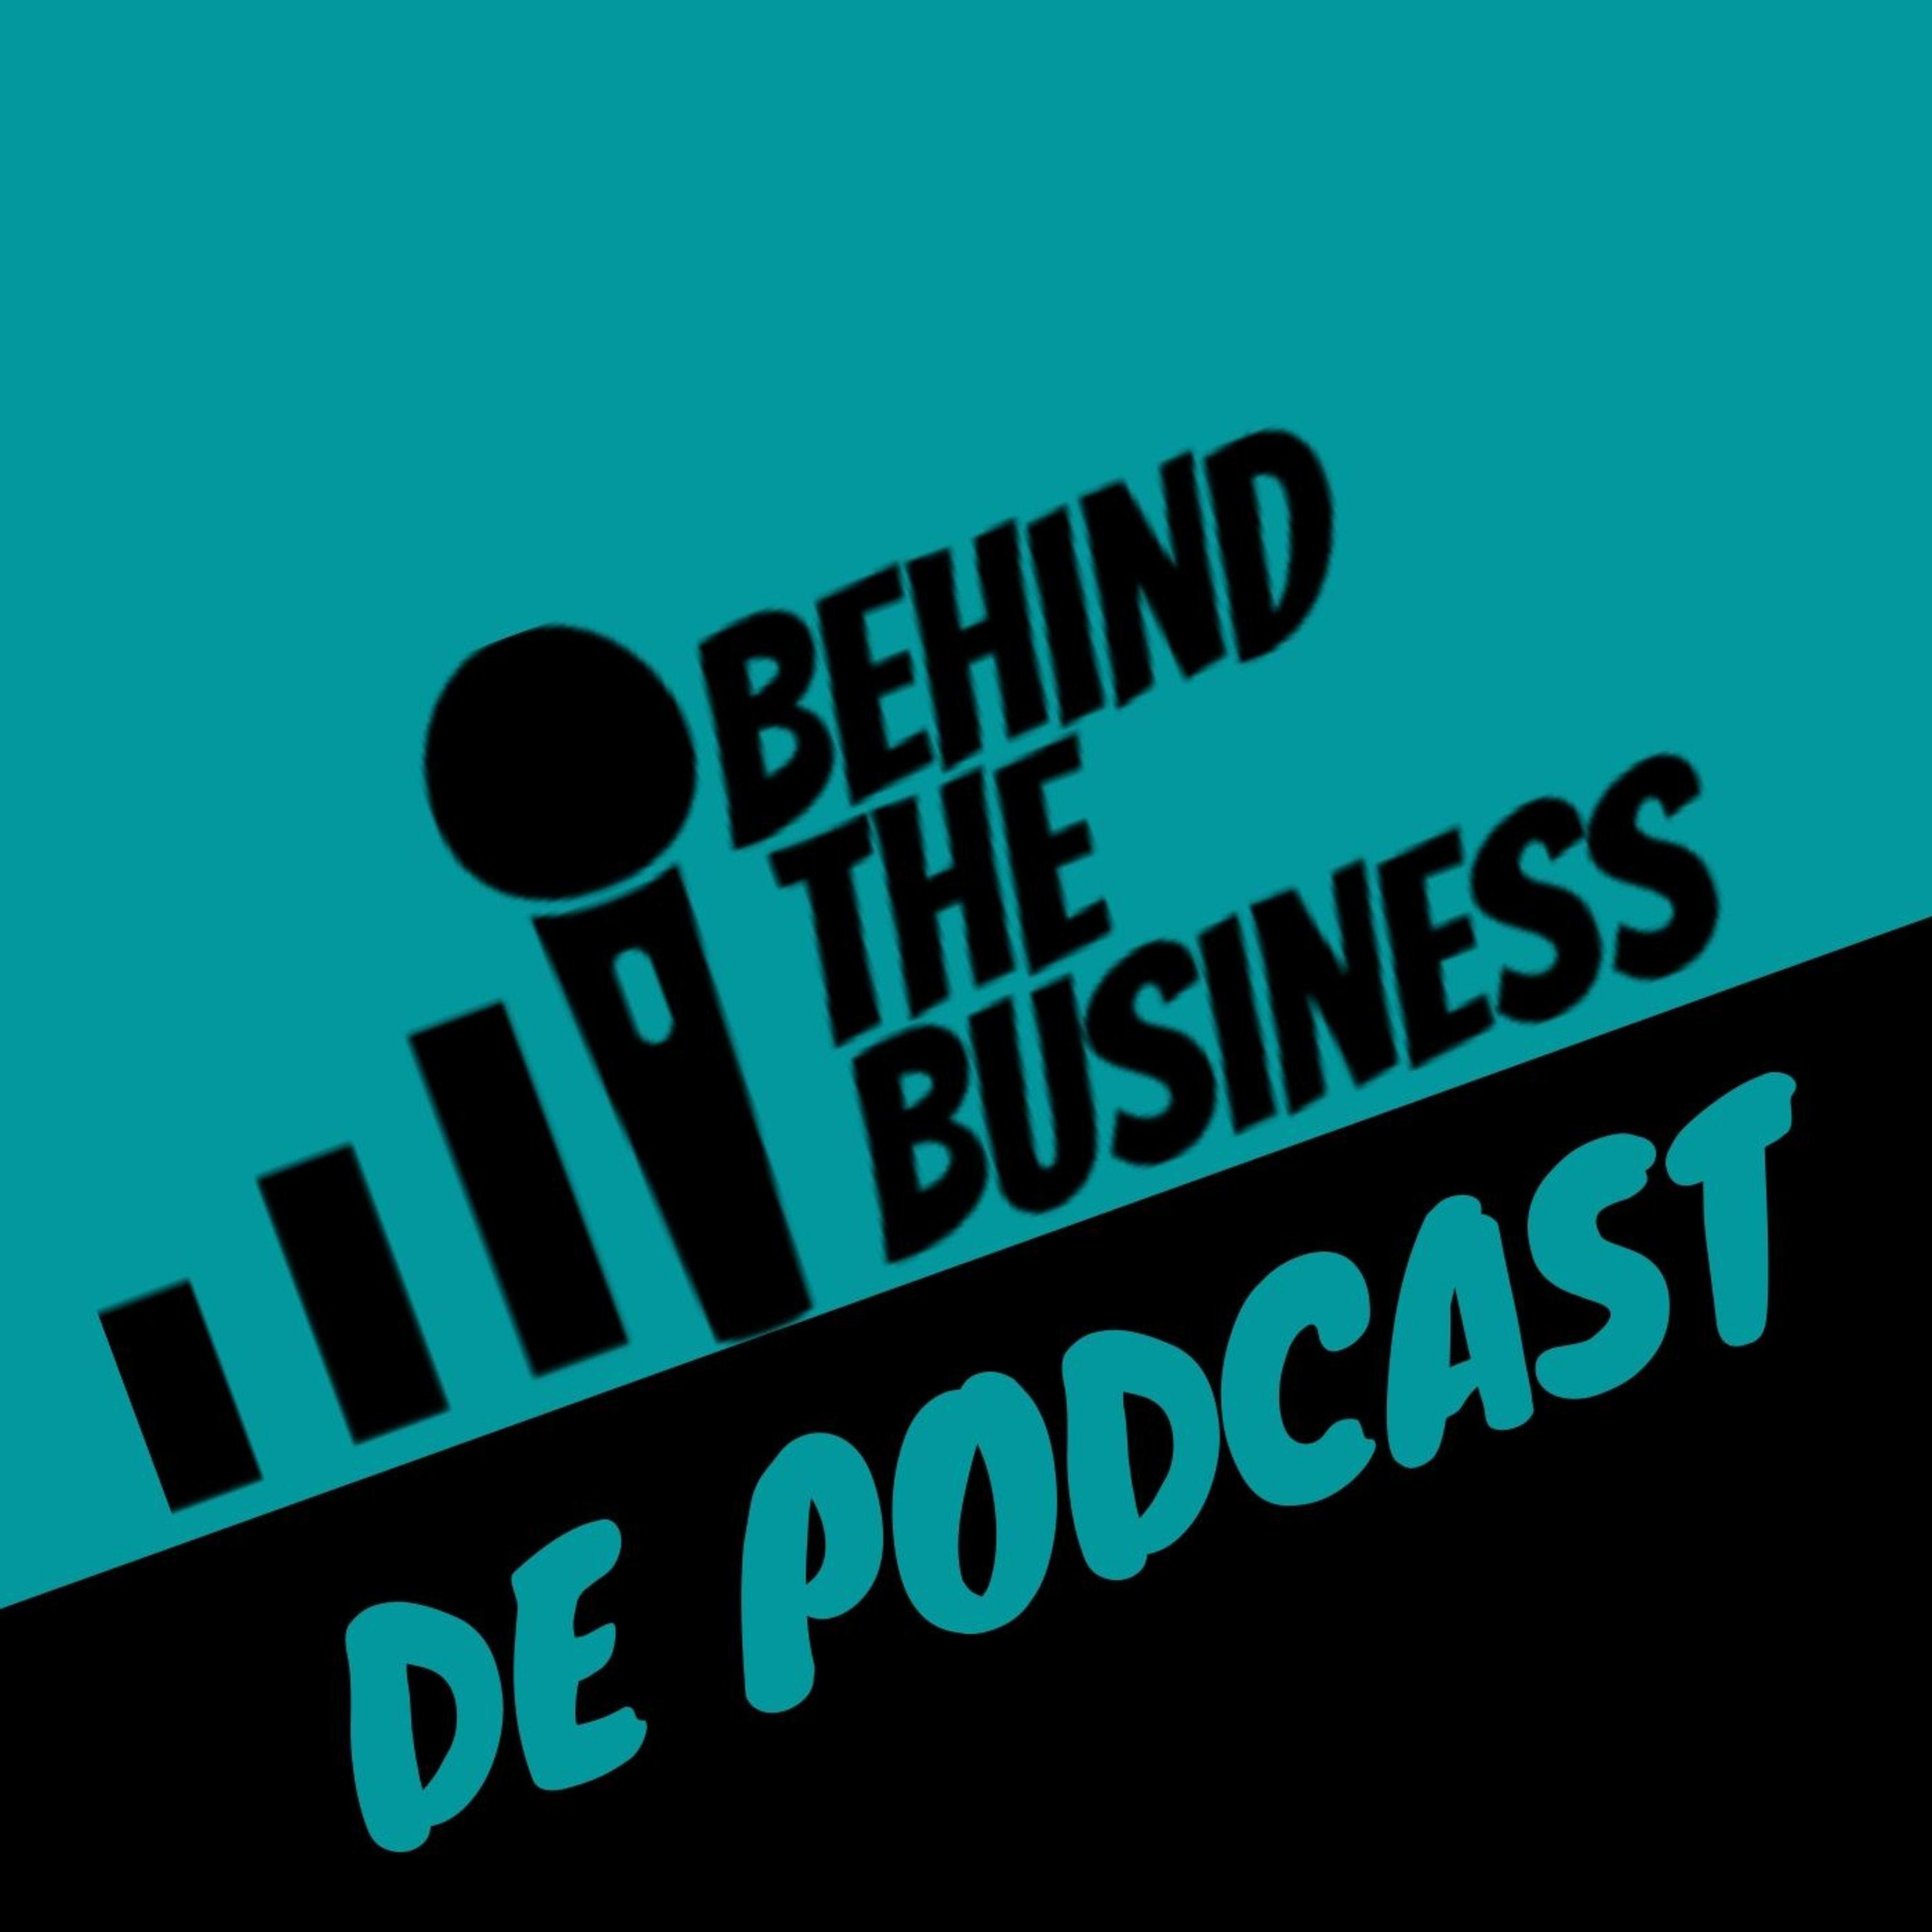 Behind The Business logo